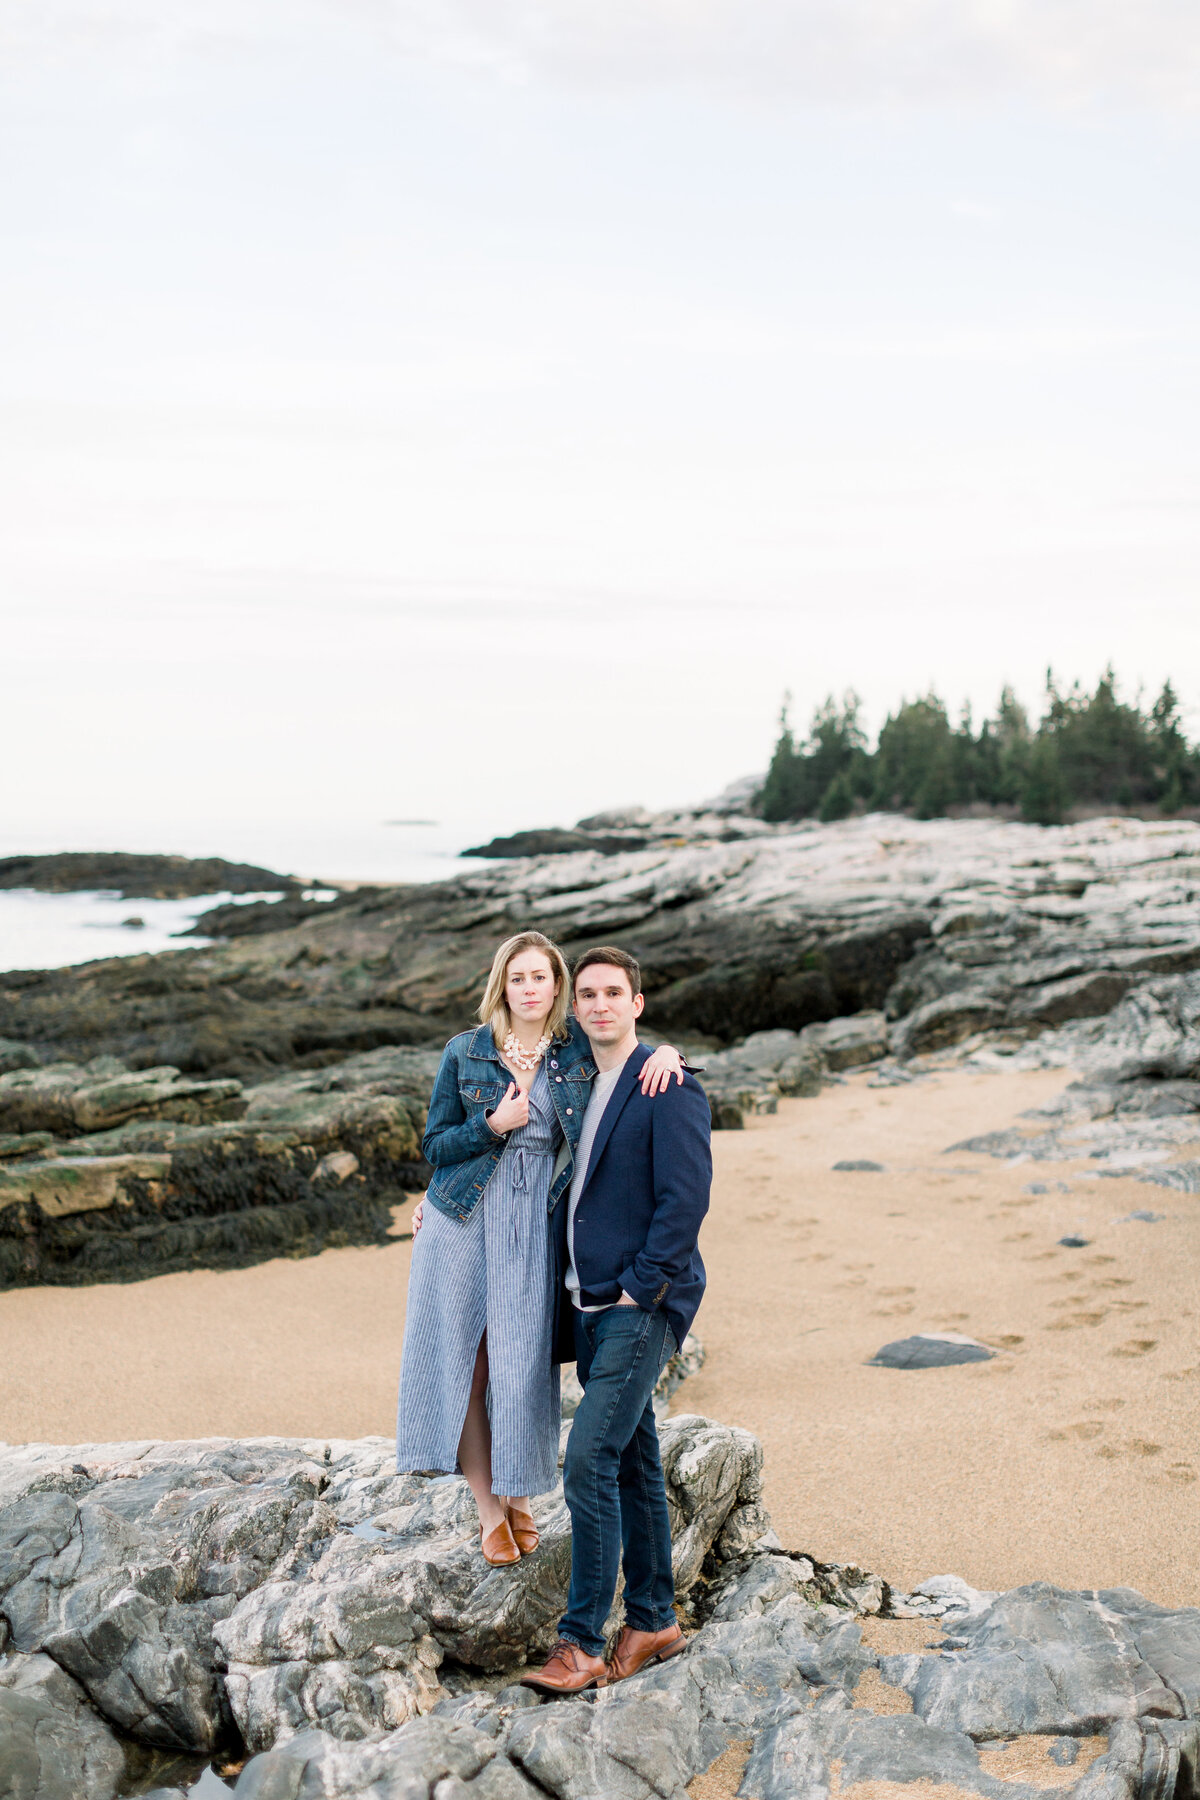 Rachel Buckley Weddings Photography Maine Wedding Lifestyle Studio Joyful Timeless Imagery Natural Portraits Destination10